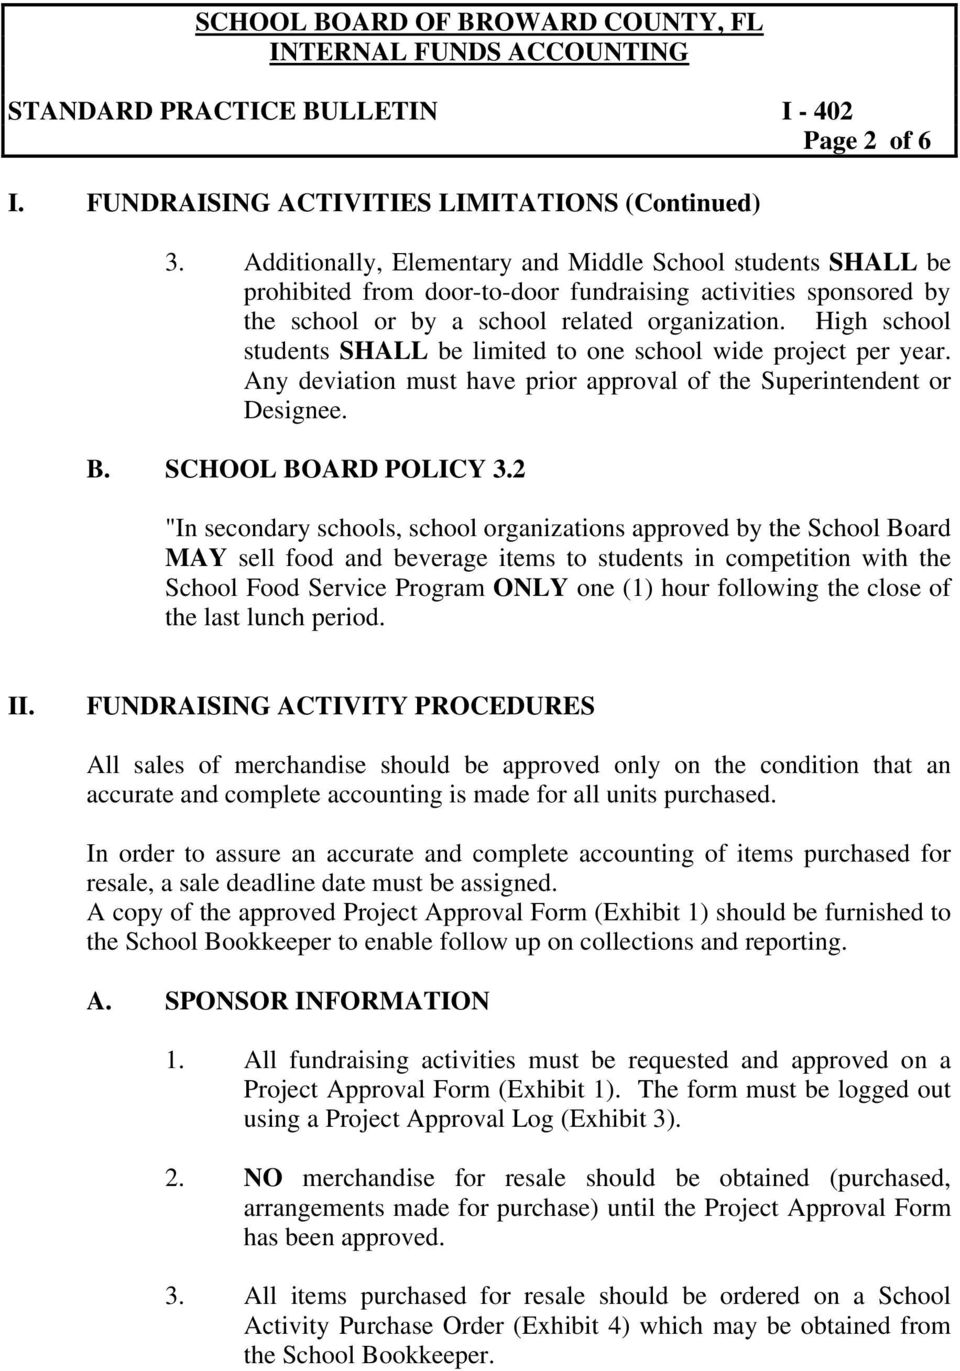 High school students SHALL be limited to one school wide project per year. Any deviation must have prior approval of the Superintendent or Designee. B. SCHOOL BOARD POLICY 3.